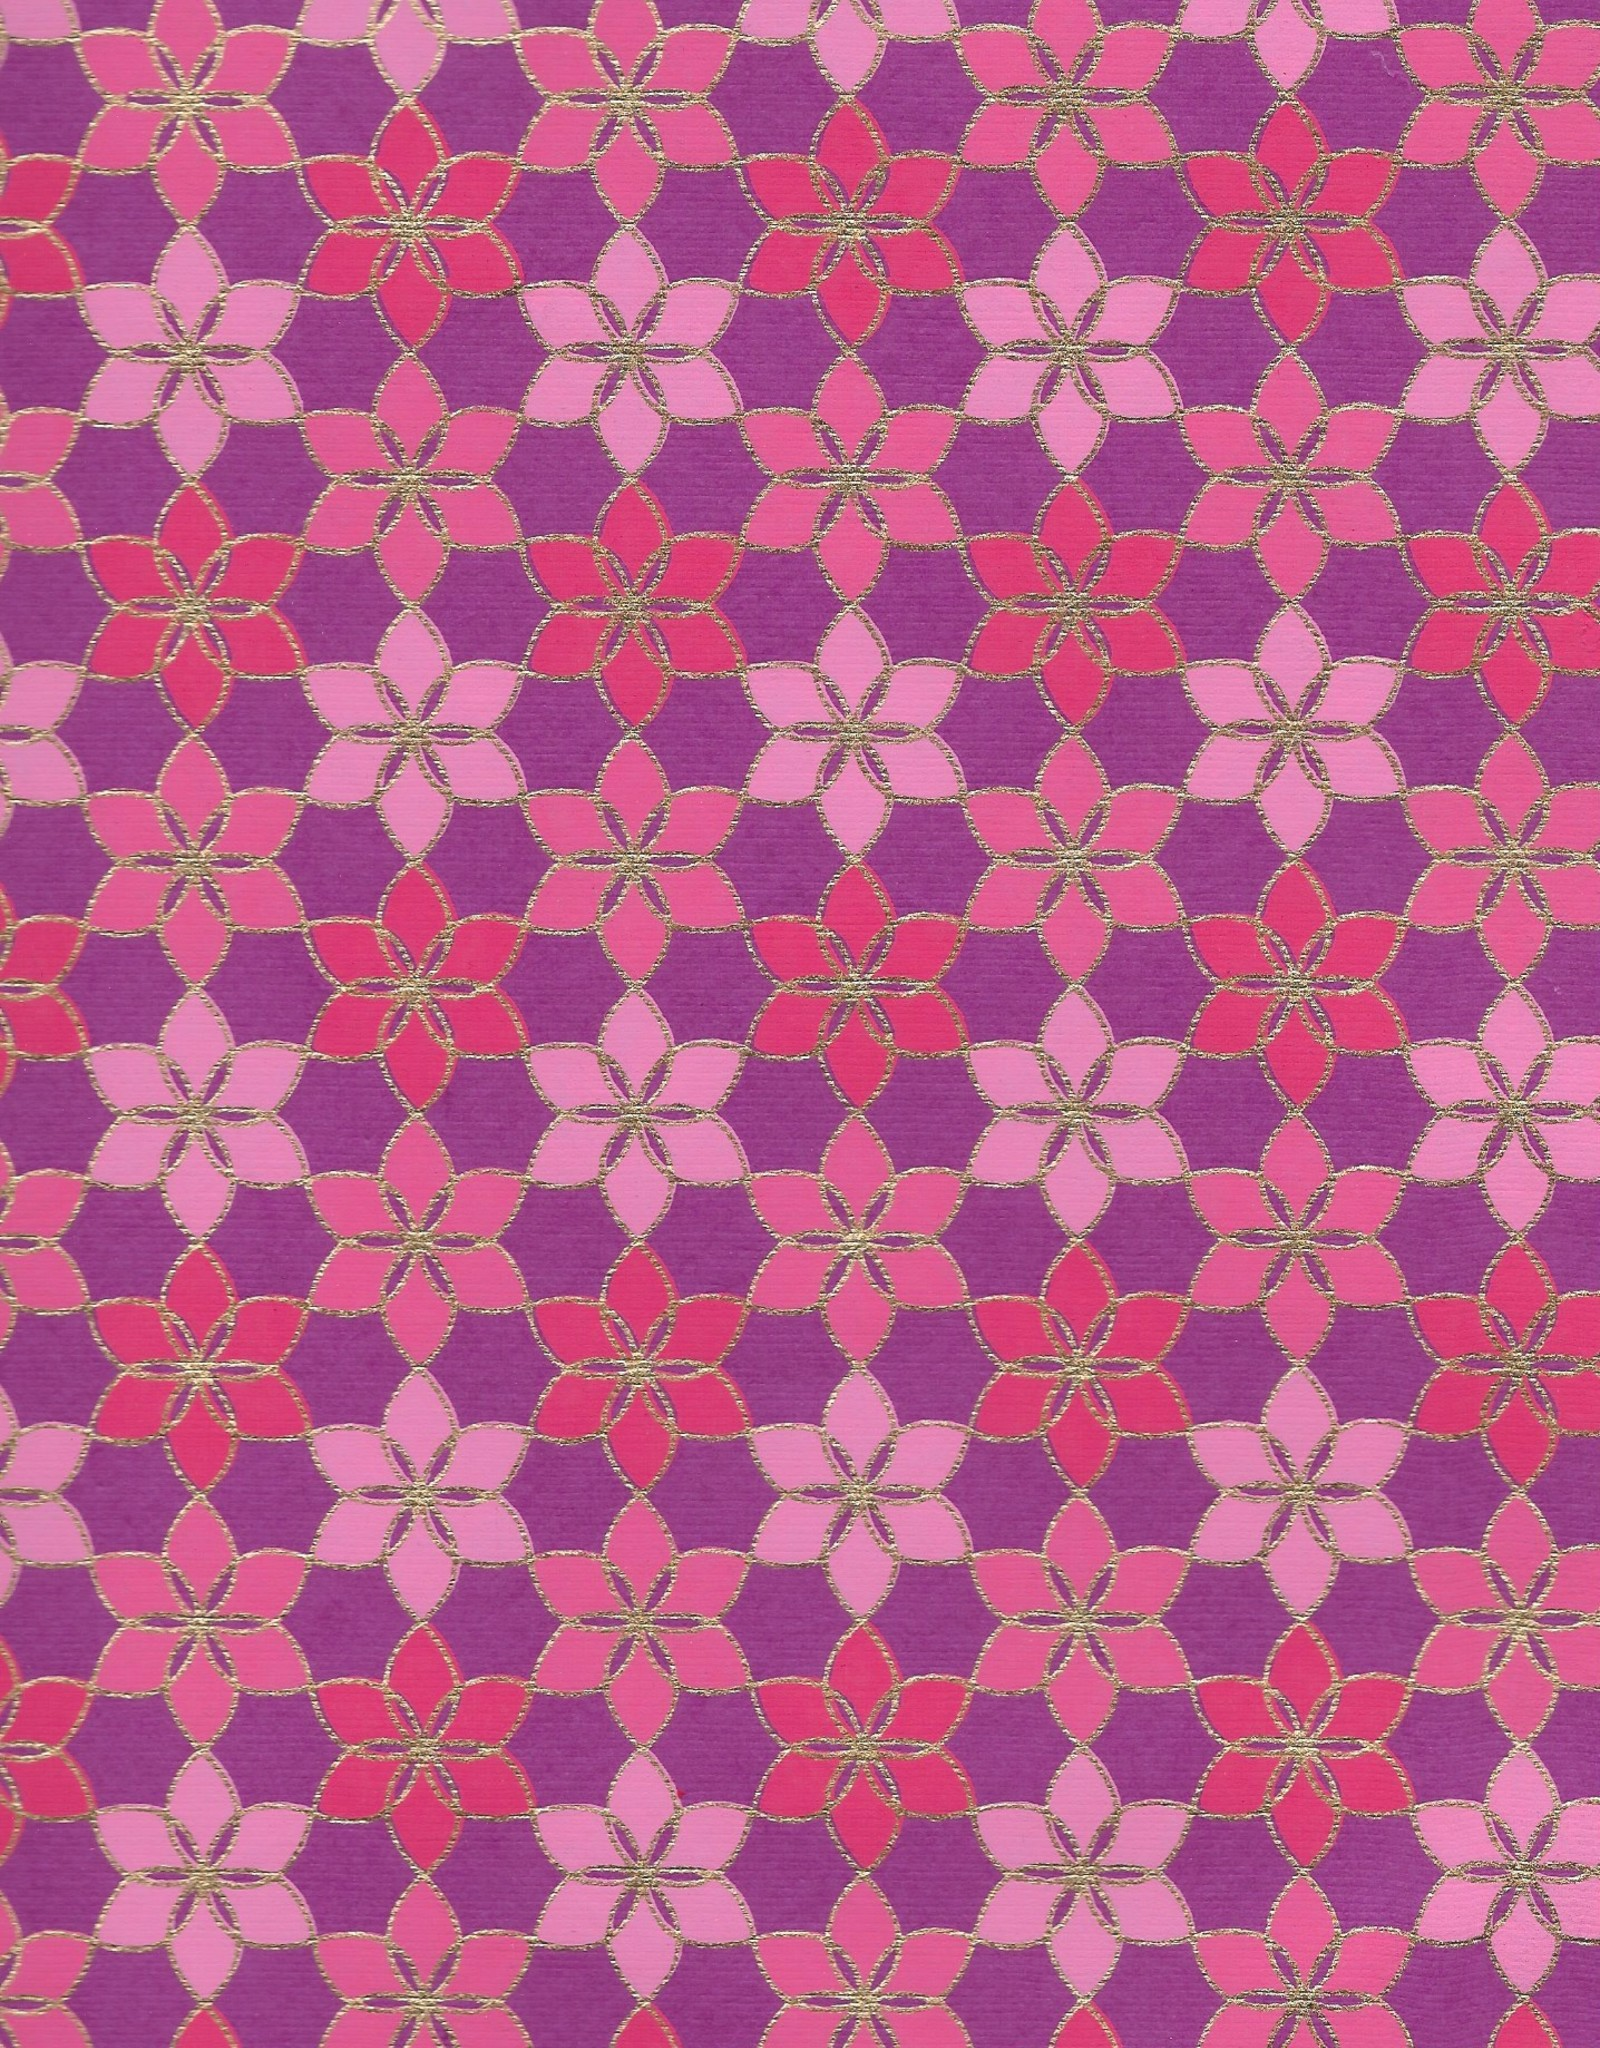 "Mosaic Daisy Pattern, Pink, Magenta with Gold Lines on Purple, 22"" x 30"""